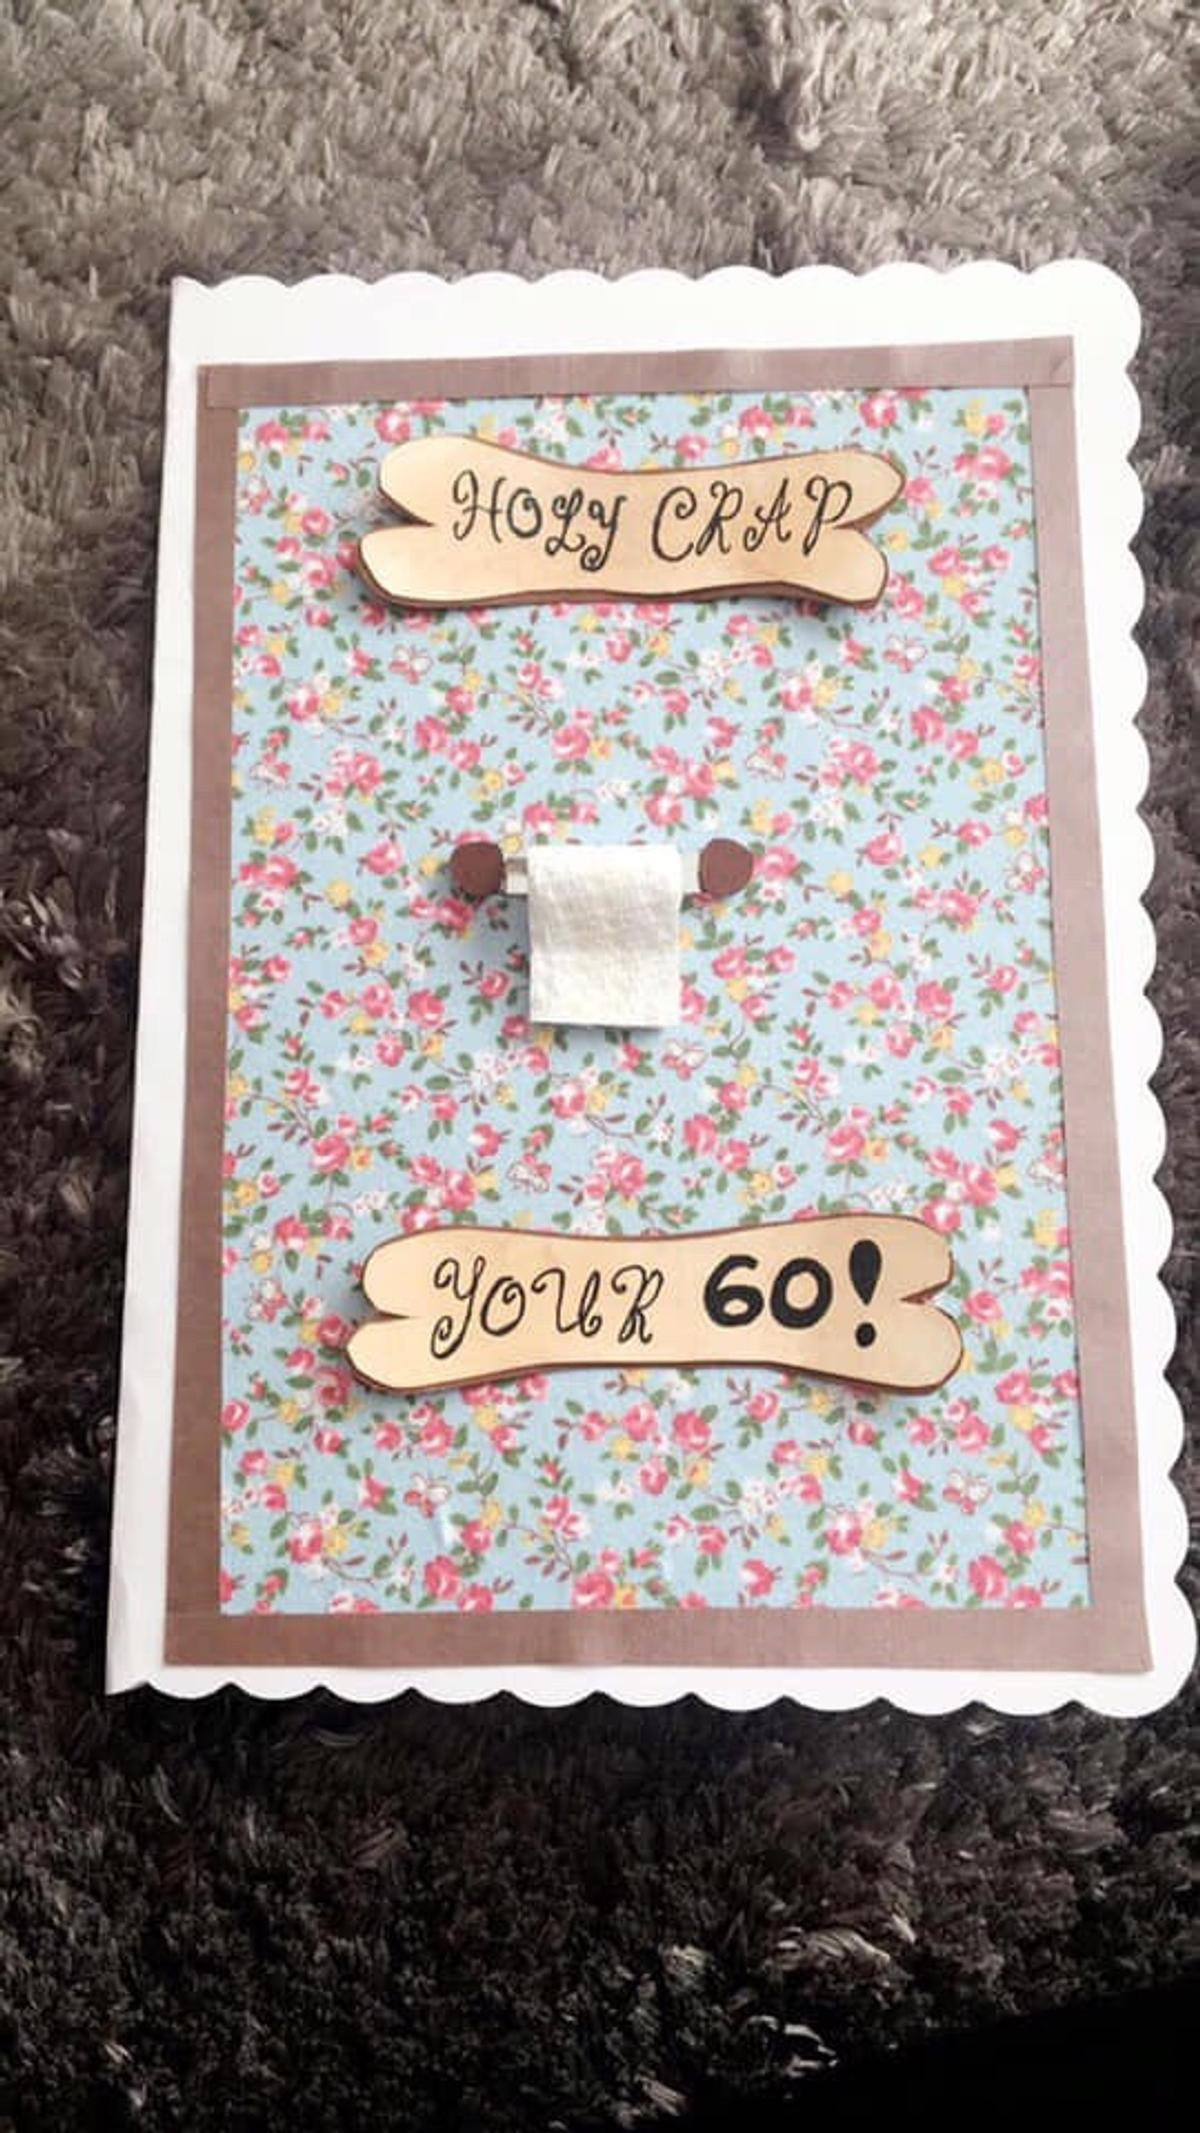 Astonishing Handmade 60Th Birthday Card In Doncaster For 2 00 For Sale Shpock Personalised Birthday Cards Rectzonderlifede